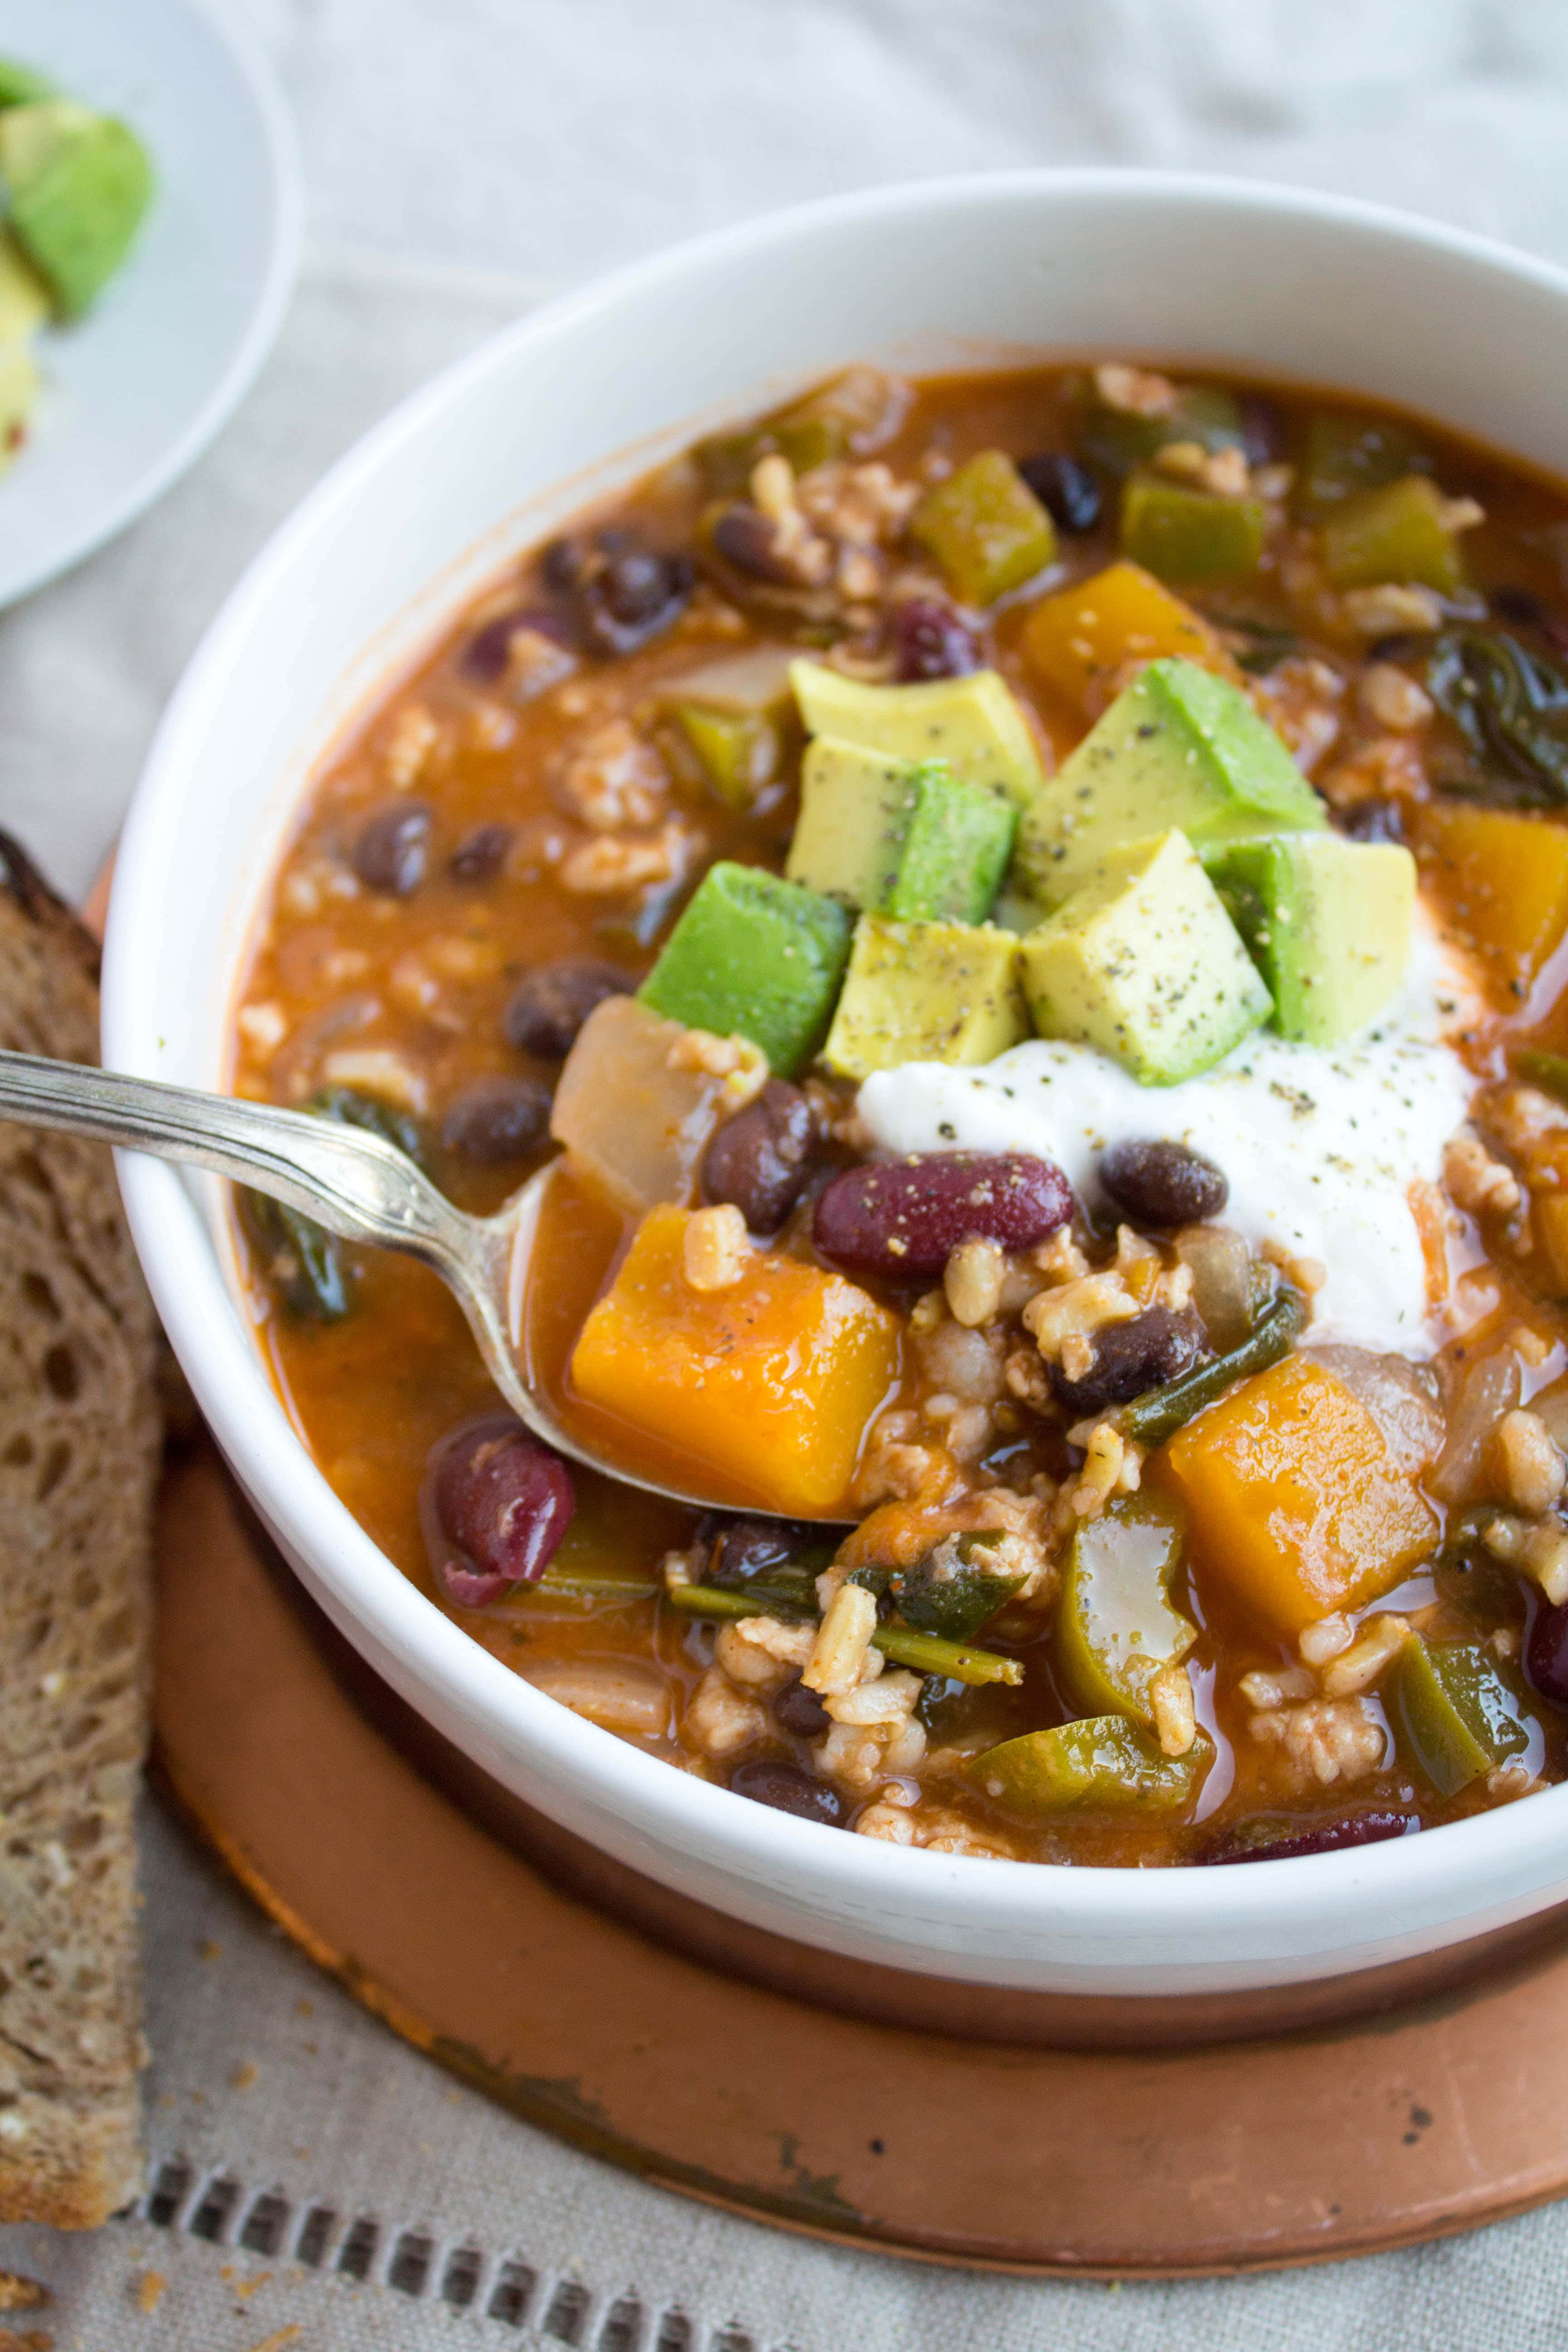 Food 1 2016 4 25 Spinach Butternut Squash Chicken Beef Chili >> Butternut Squash And Turkey Chili Recipe